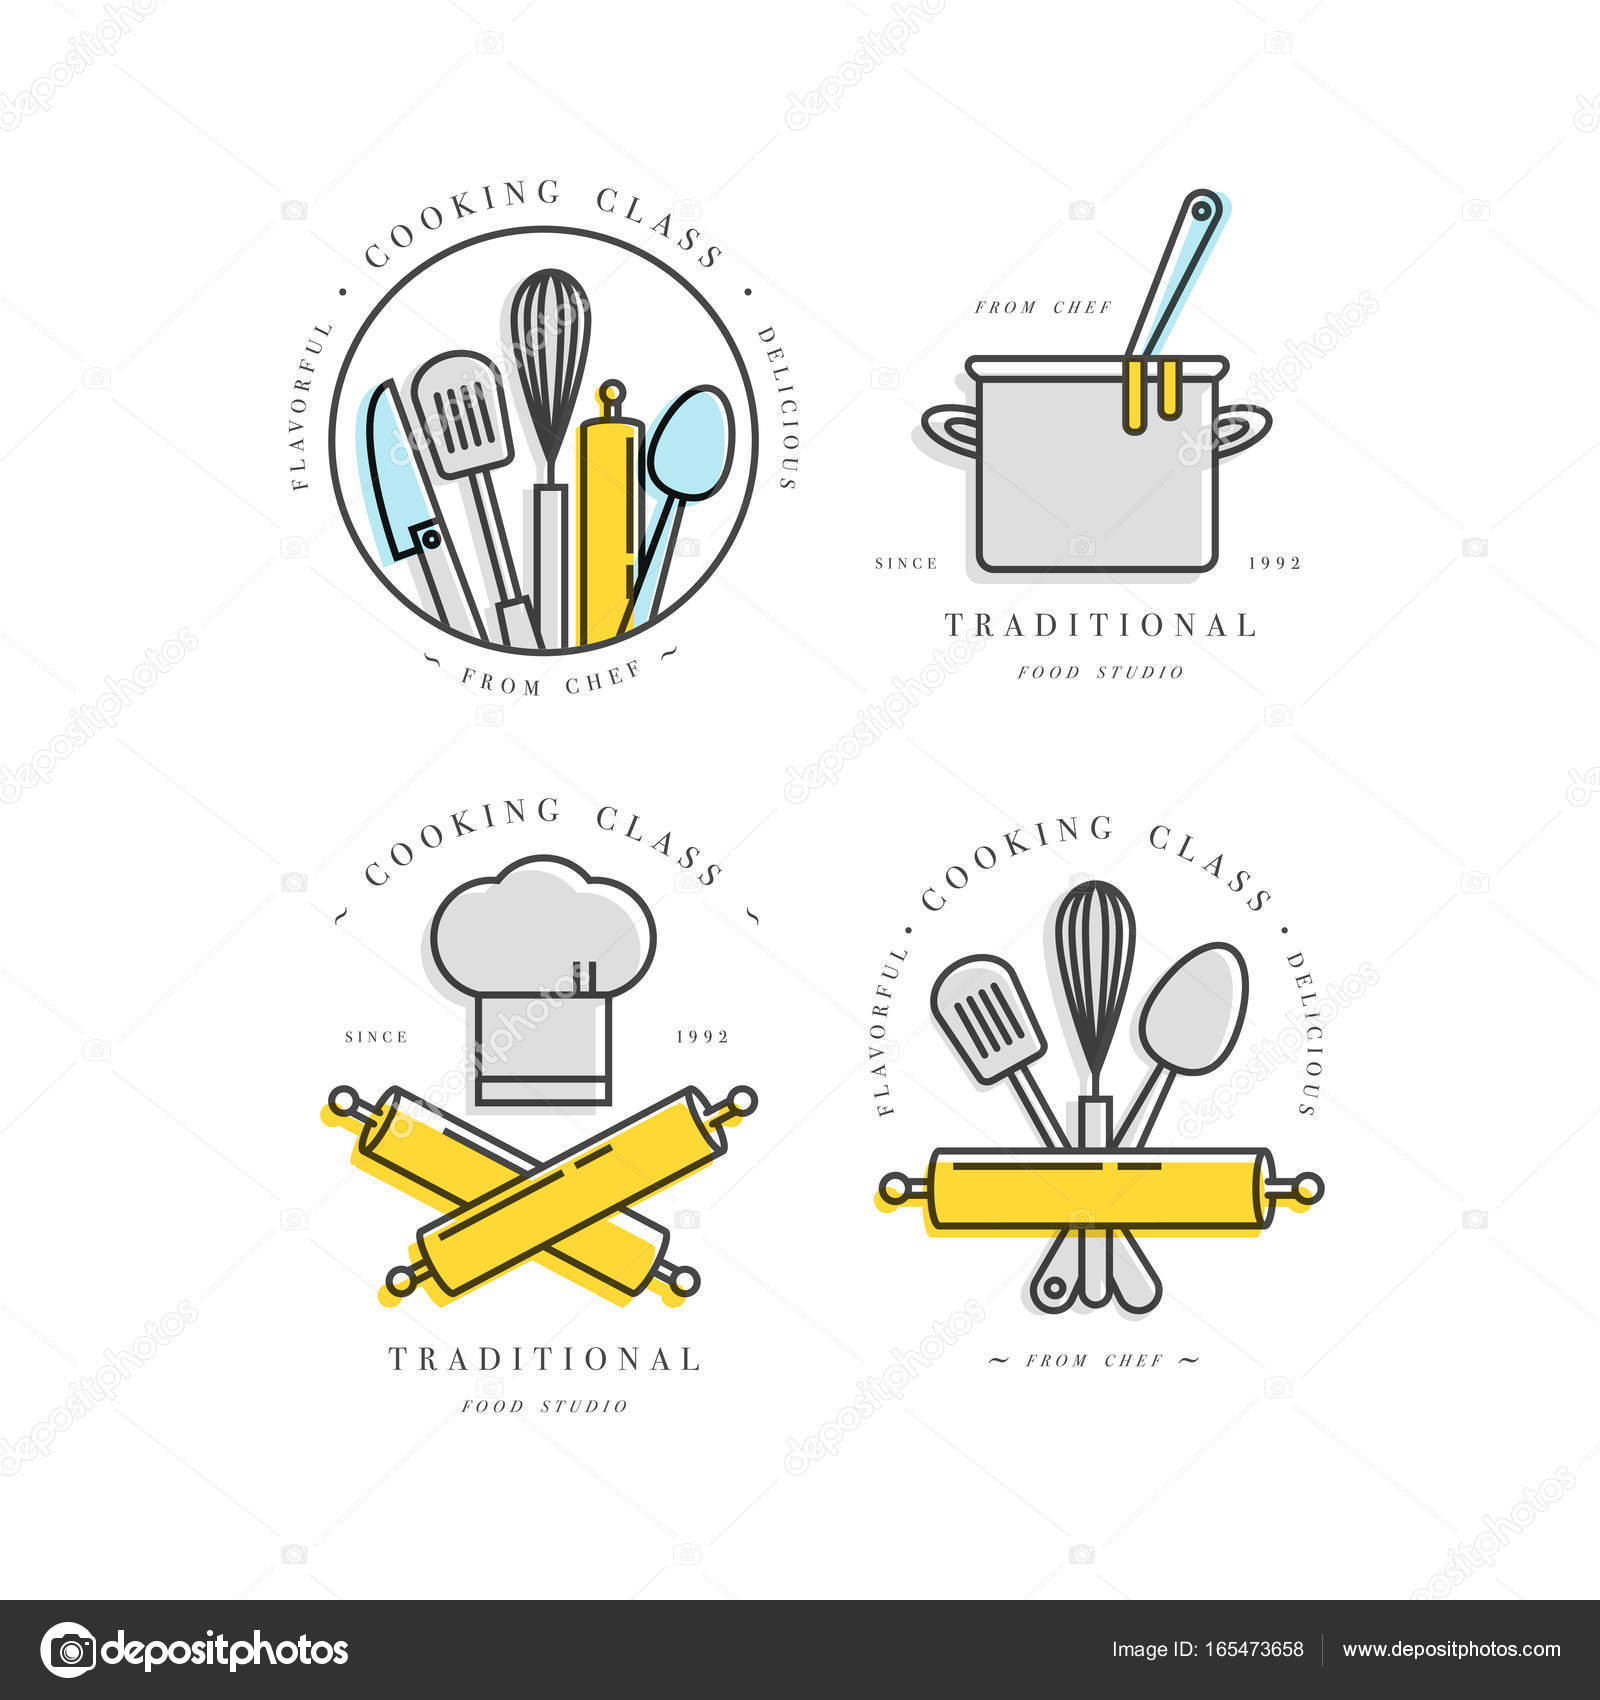 Cooking class linear design elements kitchen emblems symbols cooking class linear design elements kitchen emblems symbols icons or food studio labels ccuart Image collections